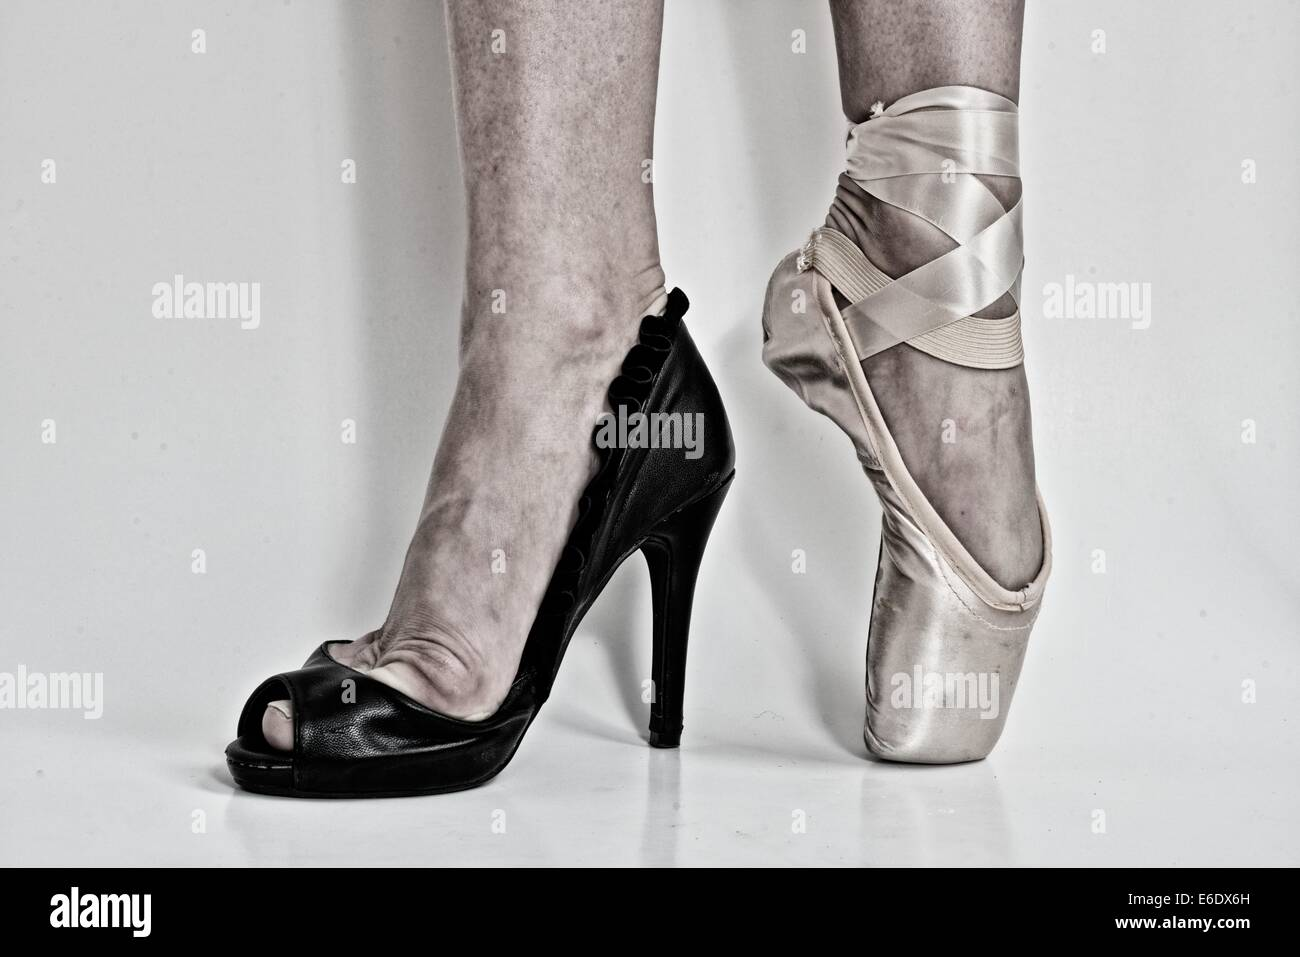 Legs Of A Ballerina With A Black High Heel Shoe In One Feet And A